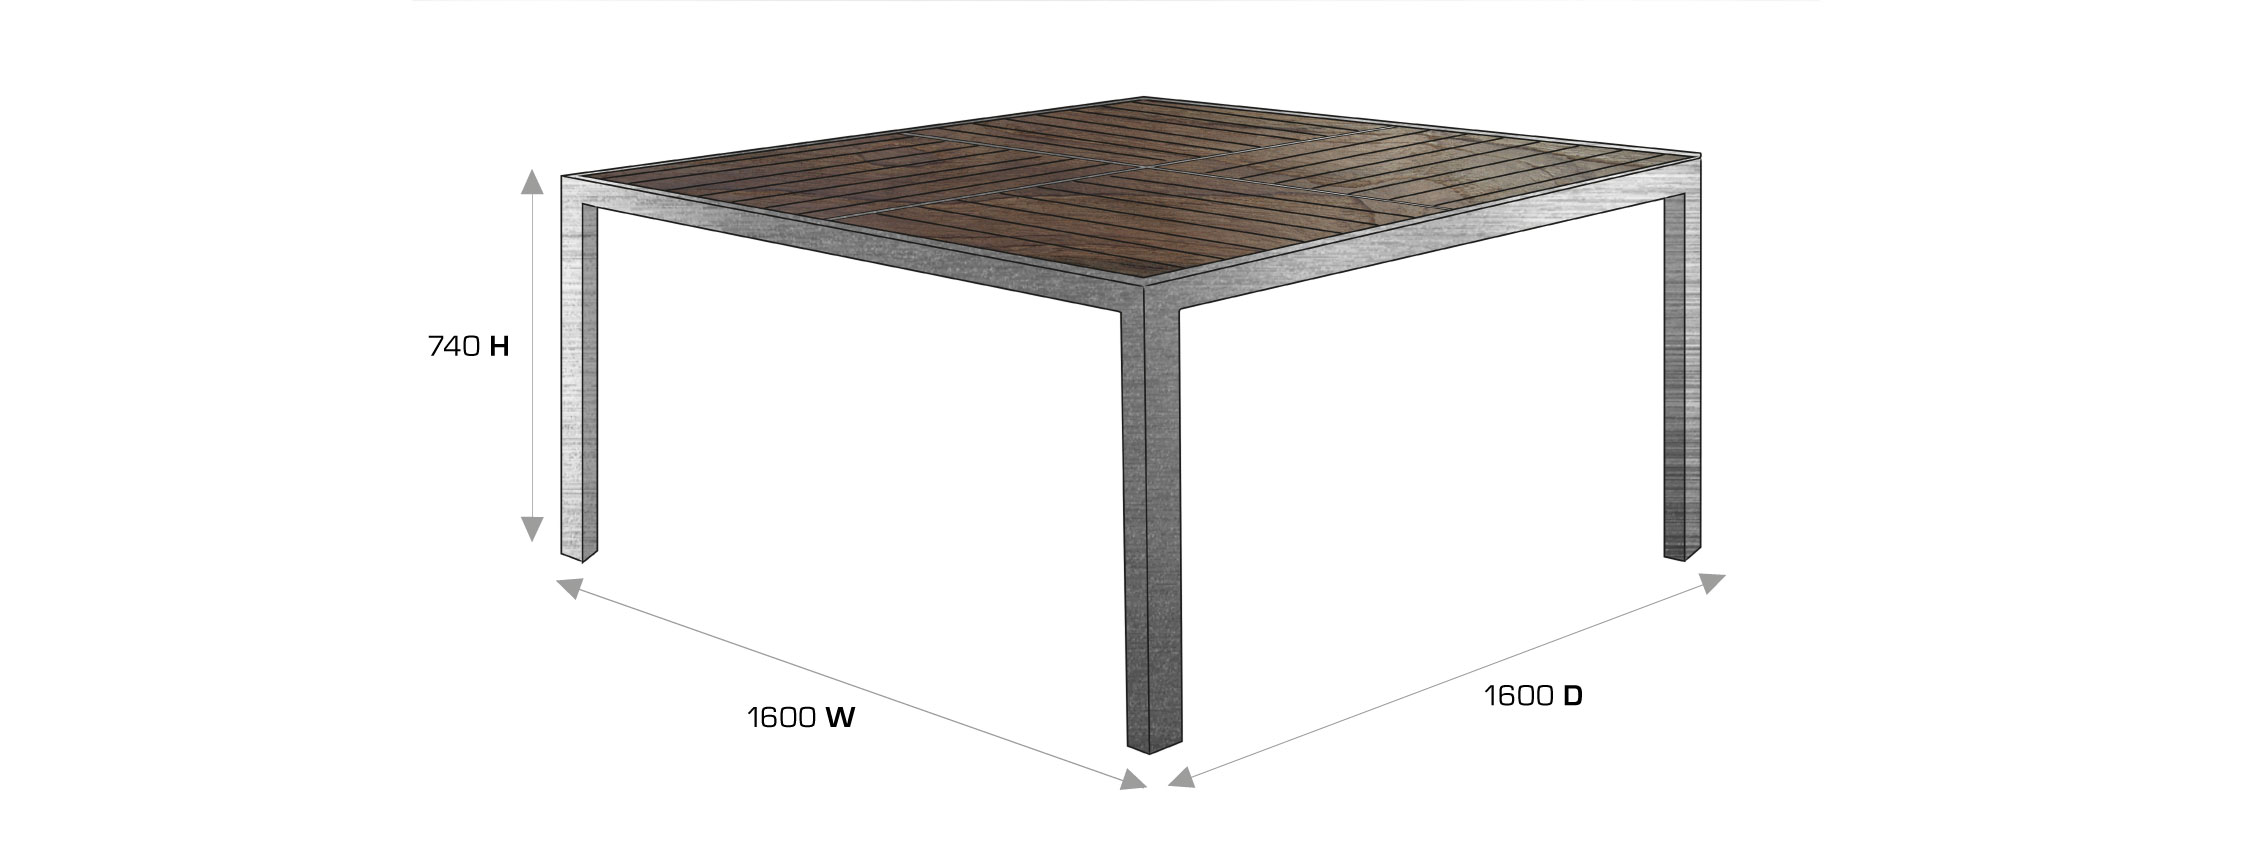 Table dimensions standard sofa table dimensions rooms for Dining table specifications